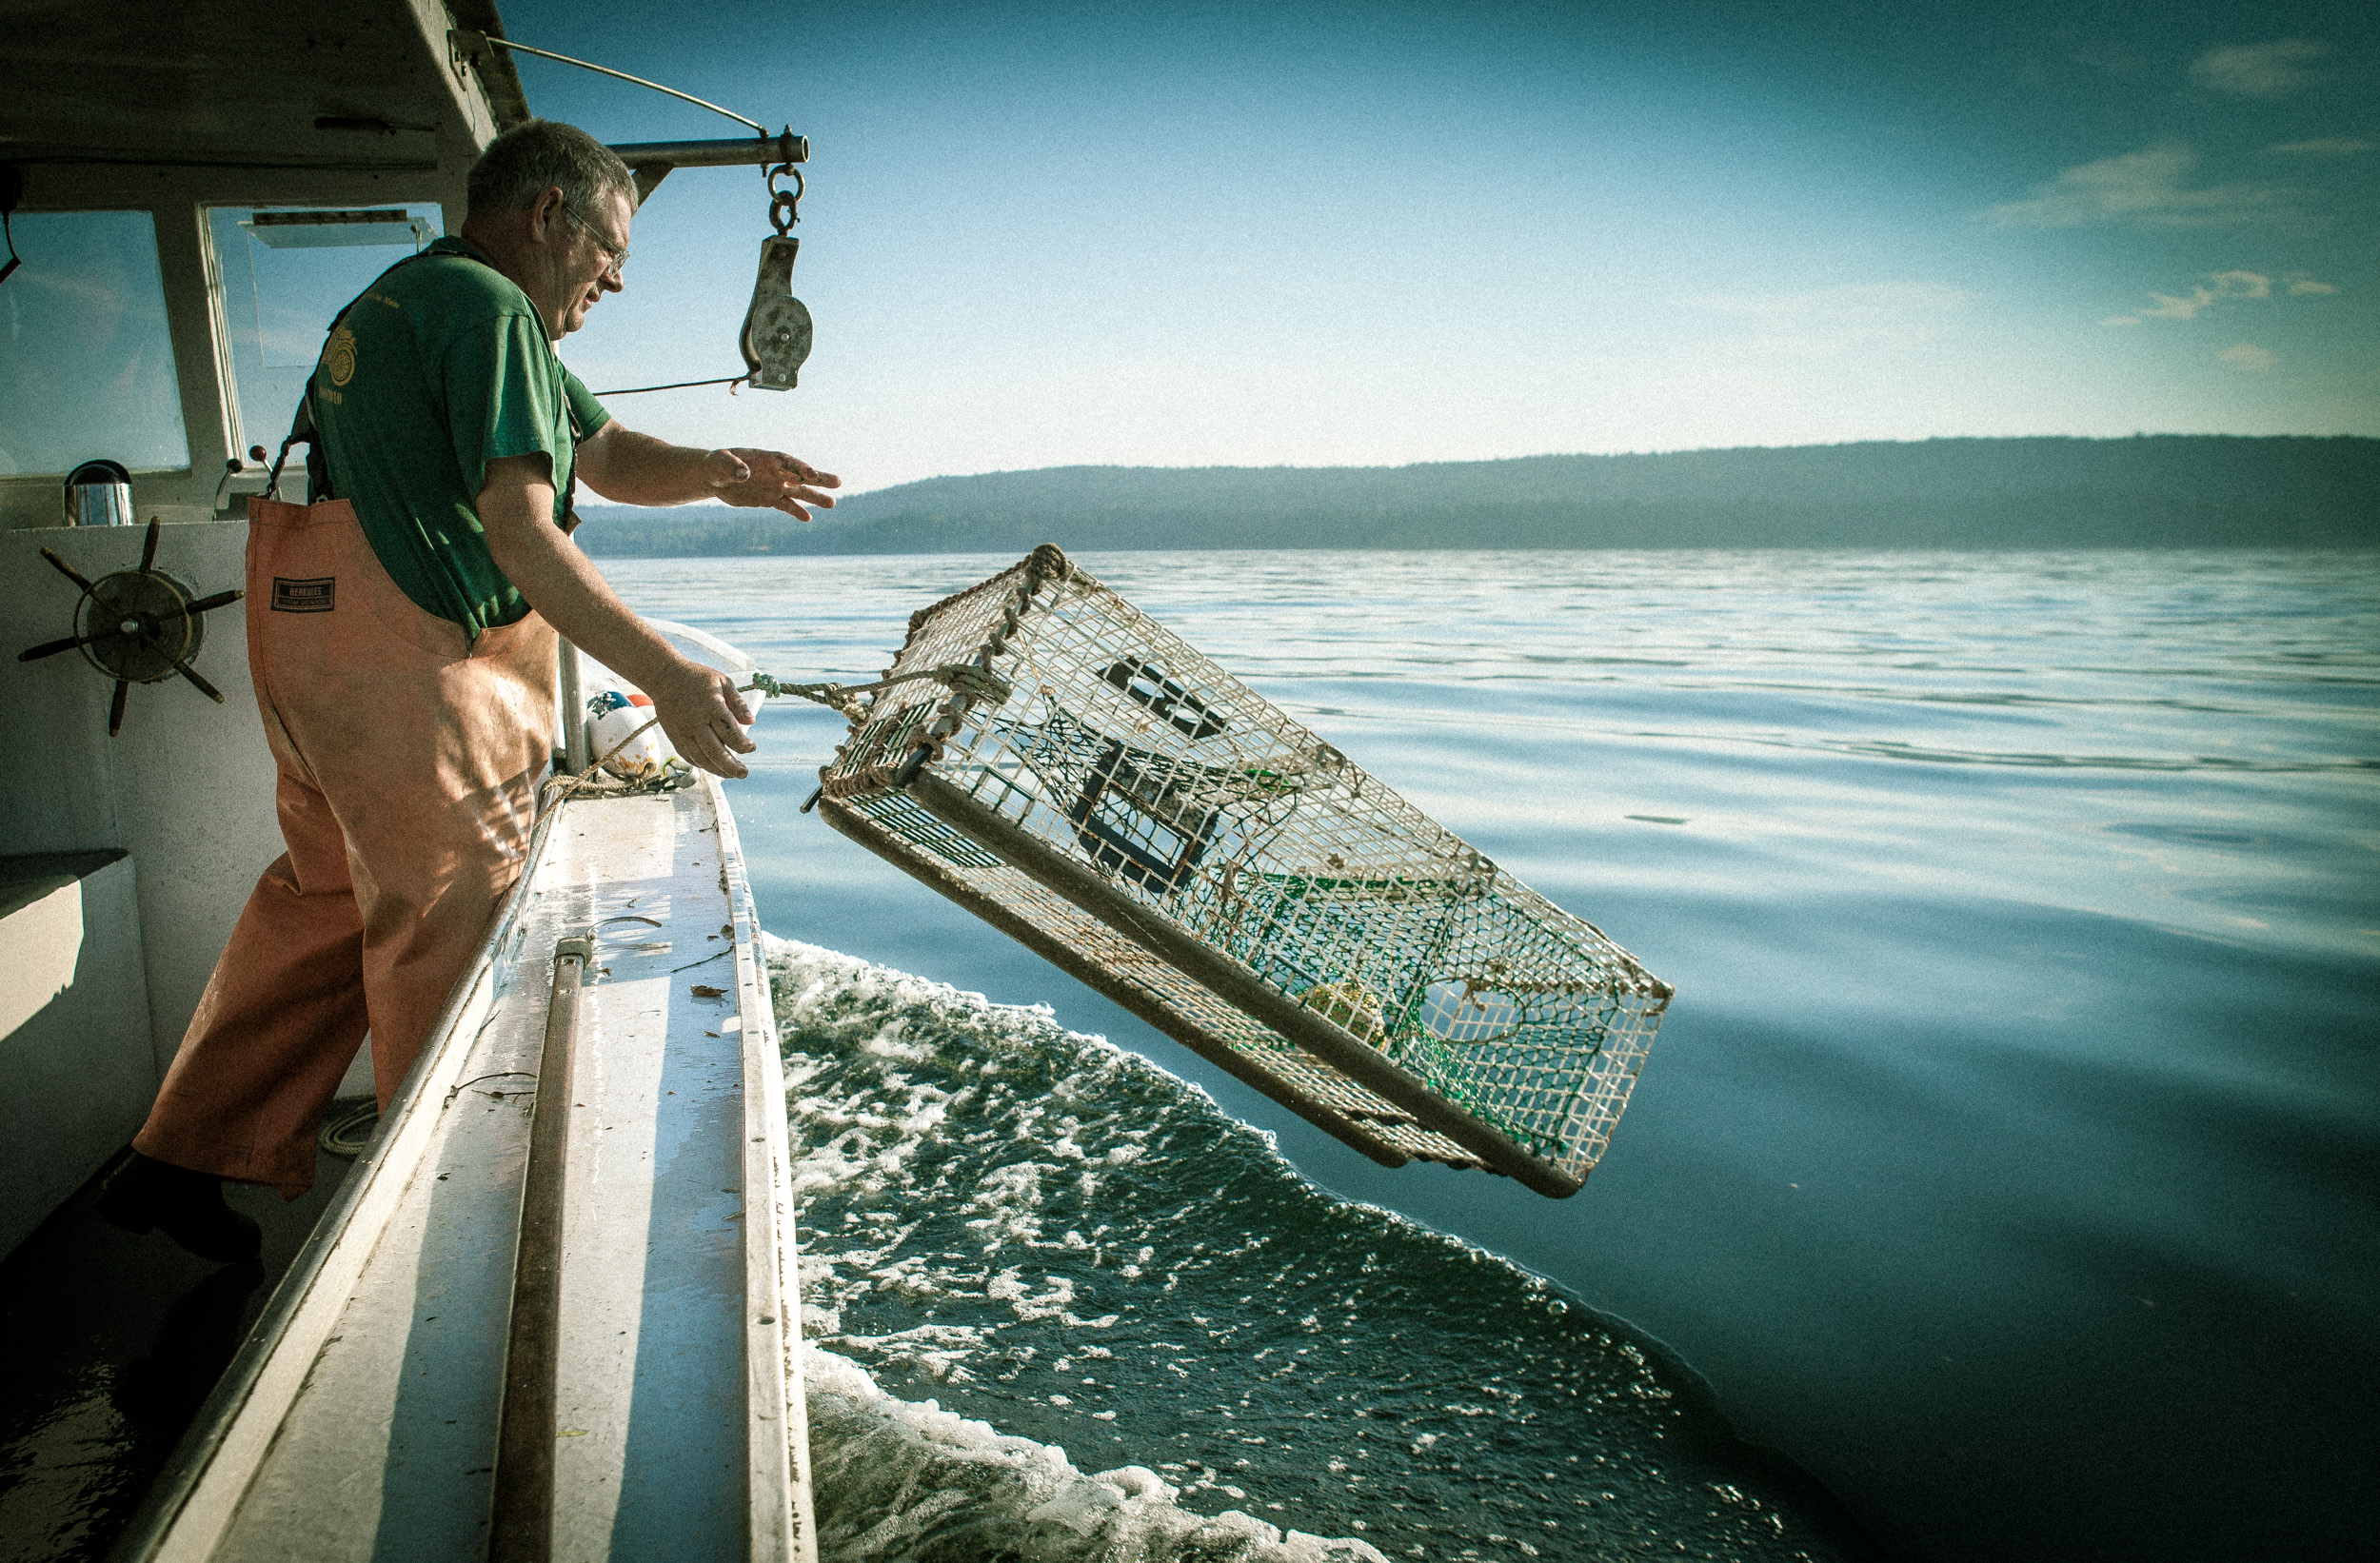 Man and lobster trap, Maine,  shot by Steven P. Widoff